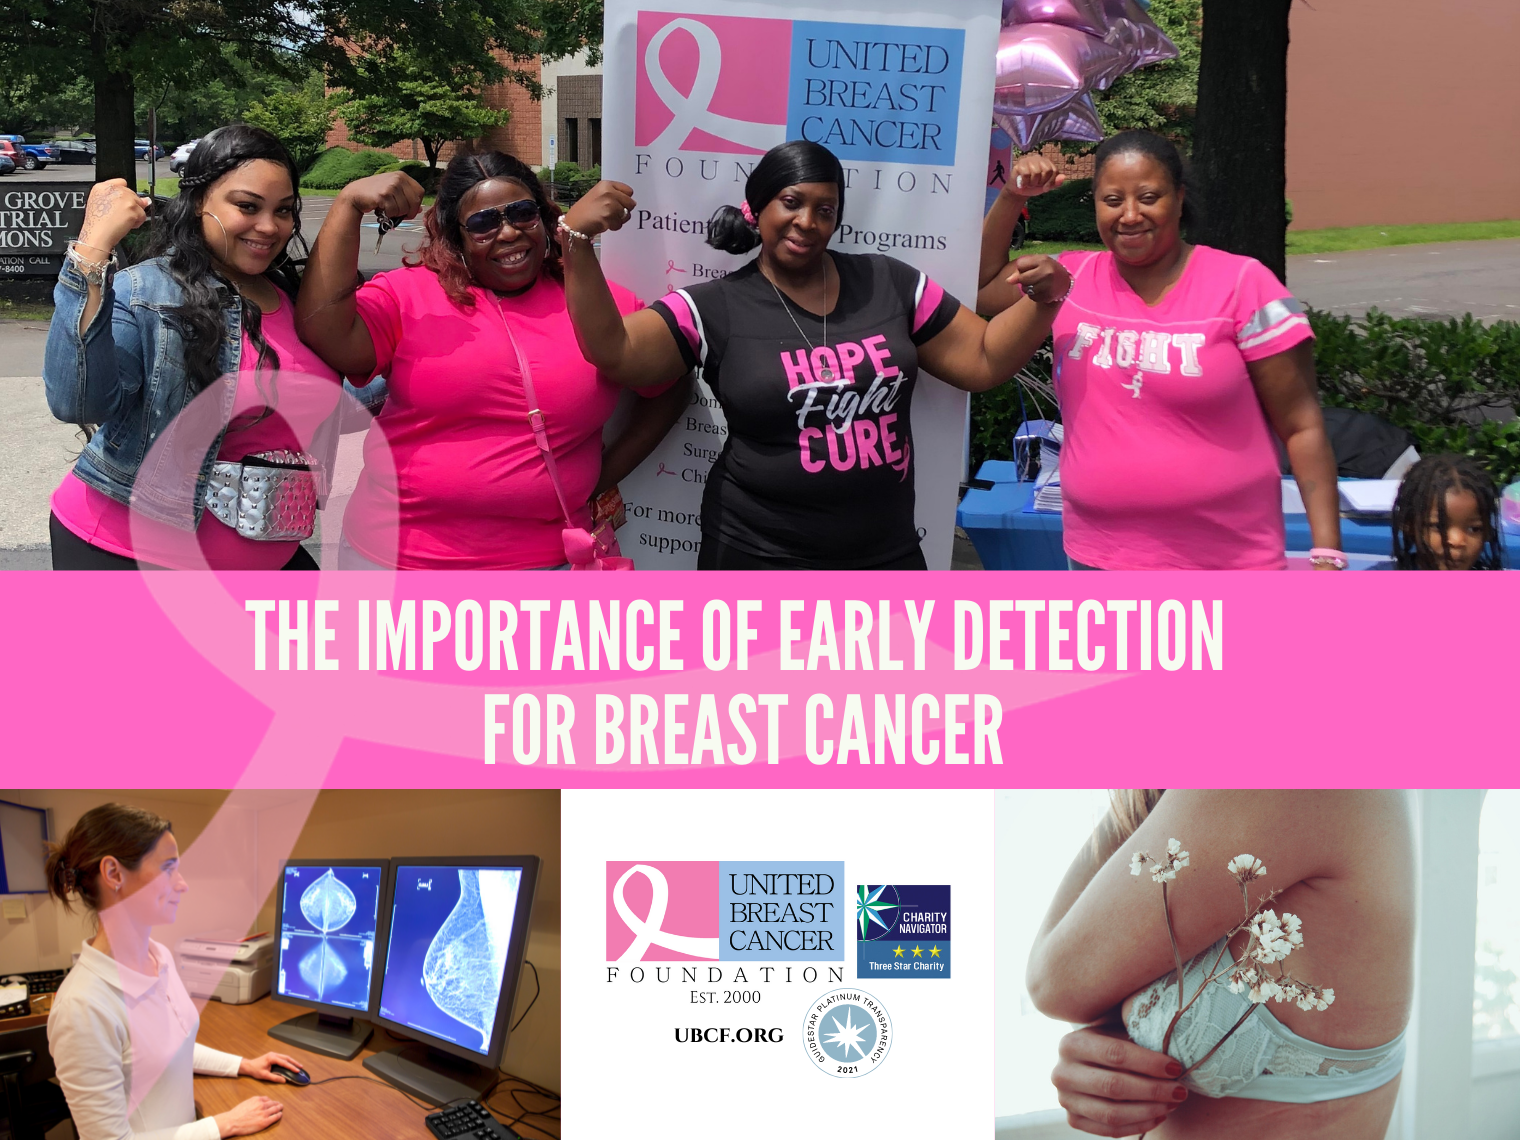 The importance of early detection